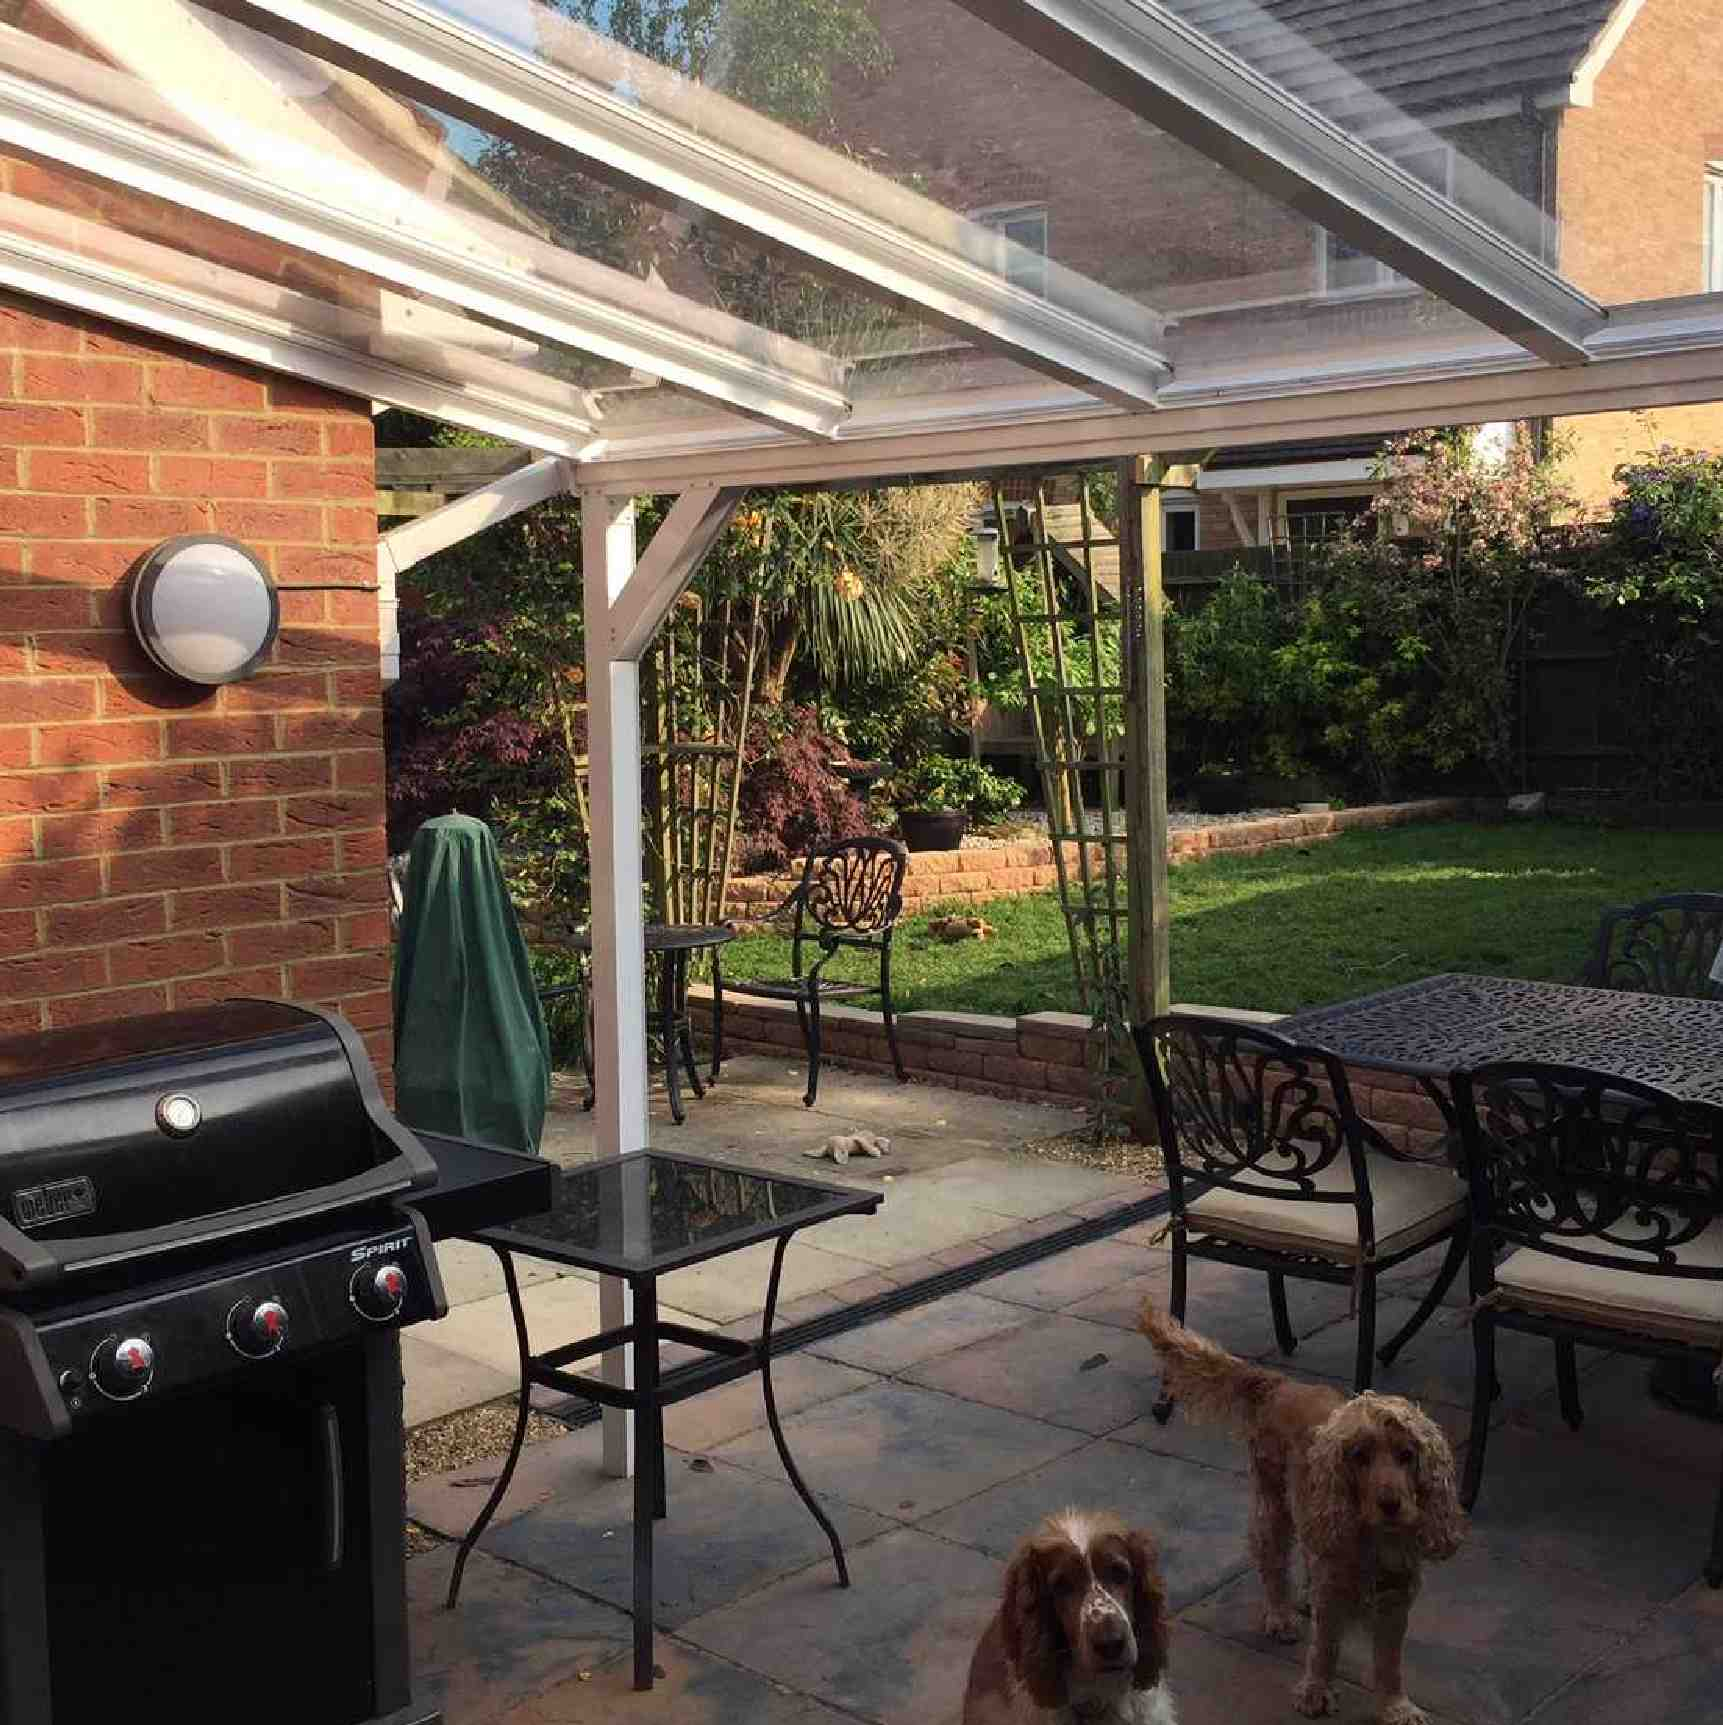 Omega Verandah with 16mm Polycarbonate Glazing - 5.2m (W) x 2.0m (P), (3) Supporting Posts